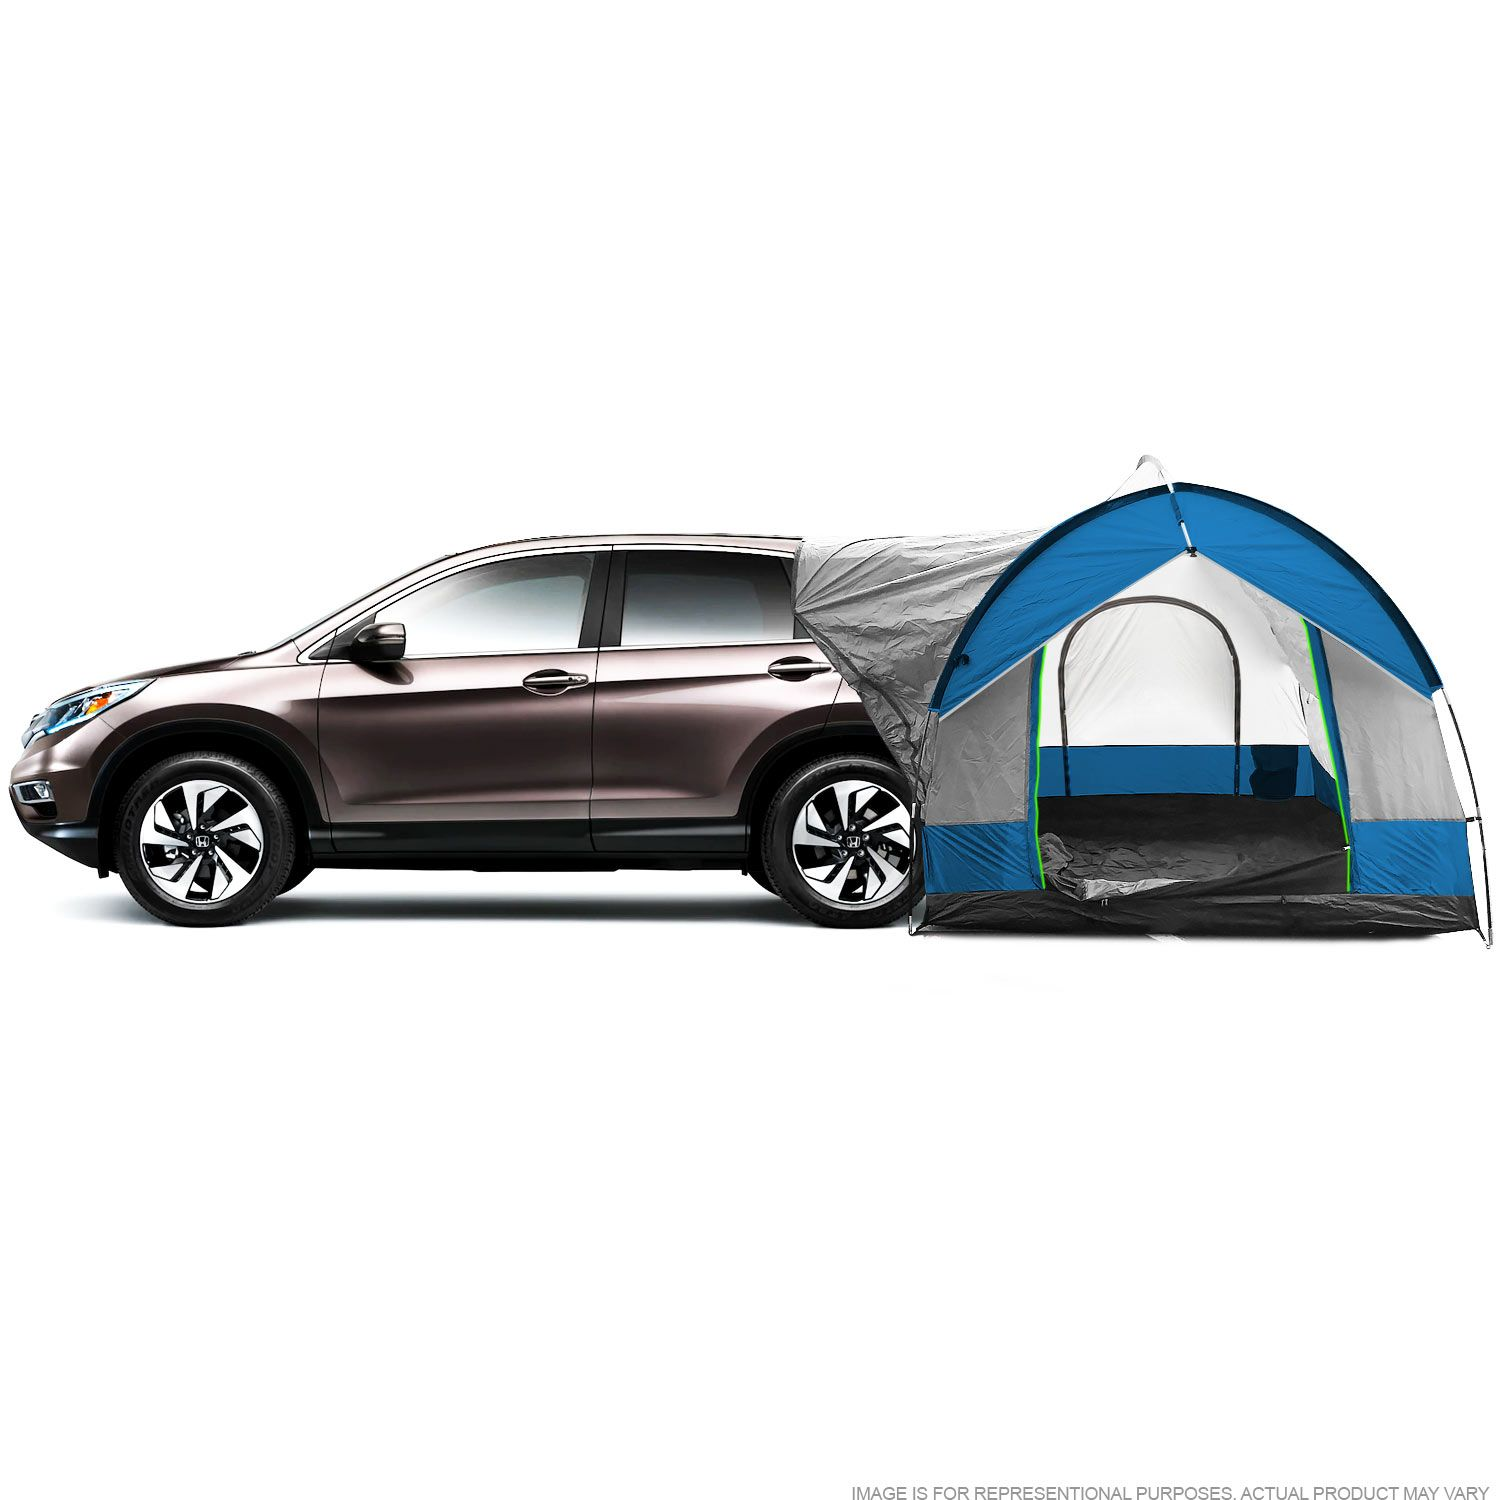 North East Harbor Universal Suv Camping Tent Up To 8 Person Sleeping Capacity Includes Rainfly And